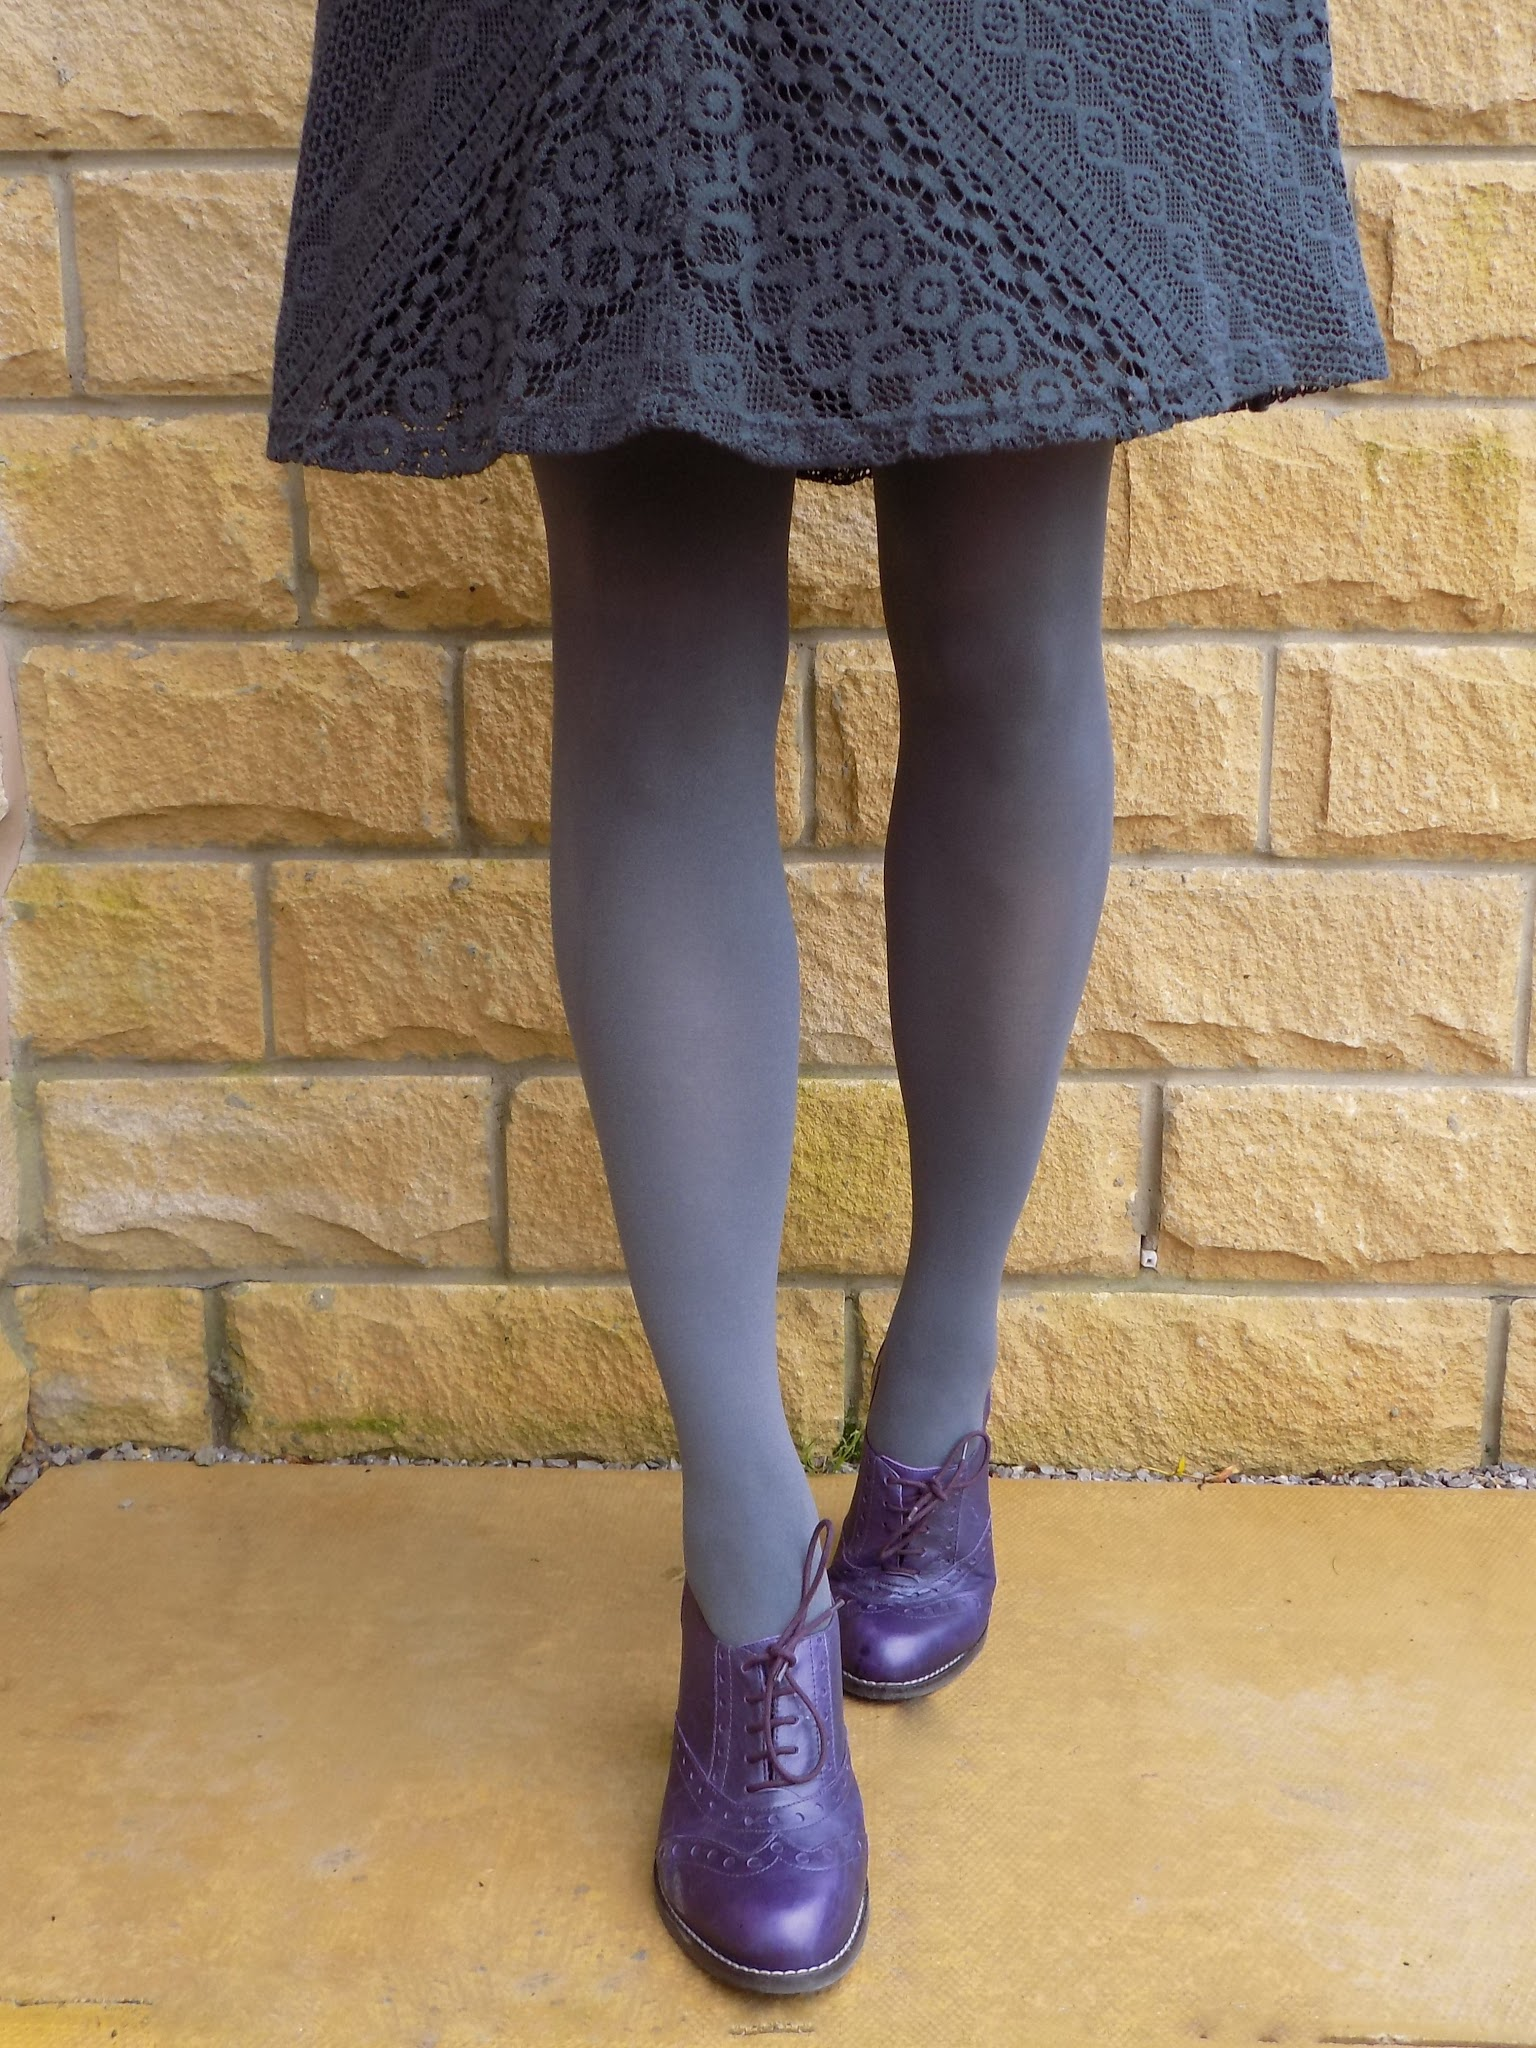 Purple high heeled brogues with grey opaque tights